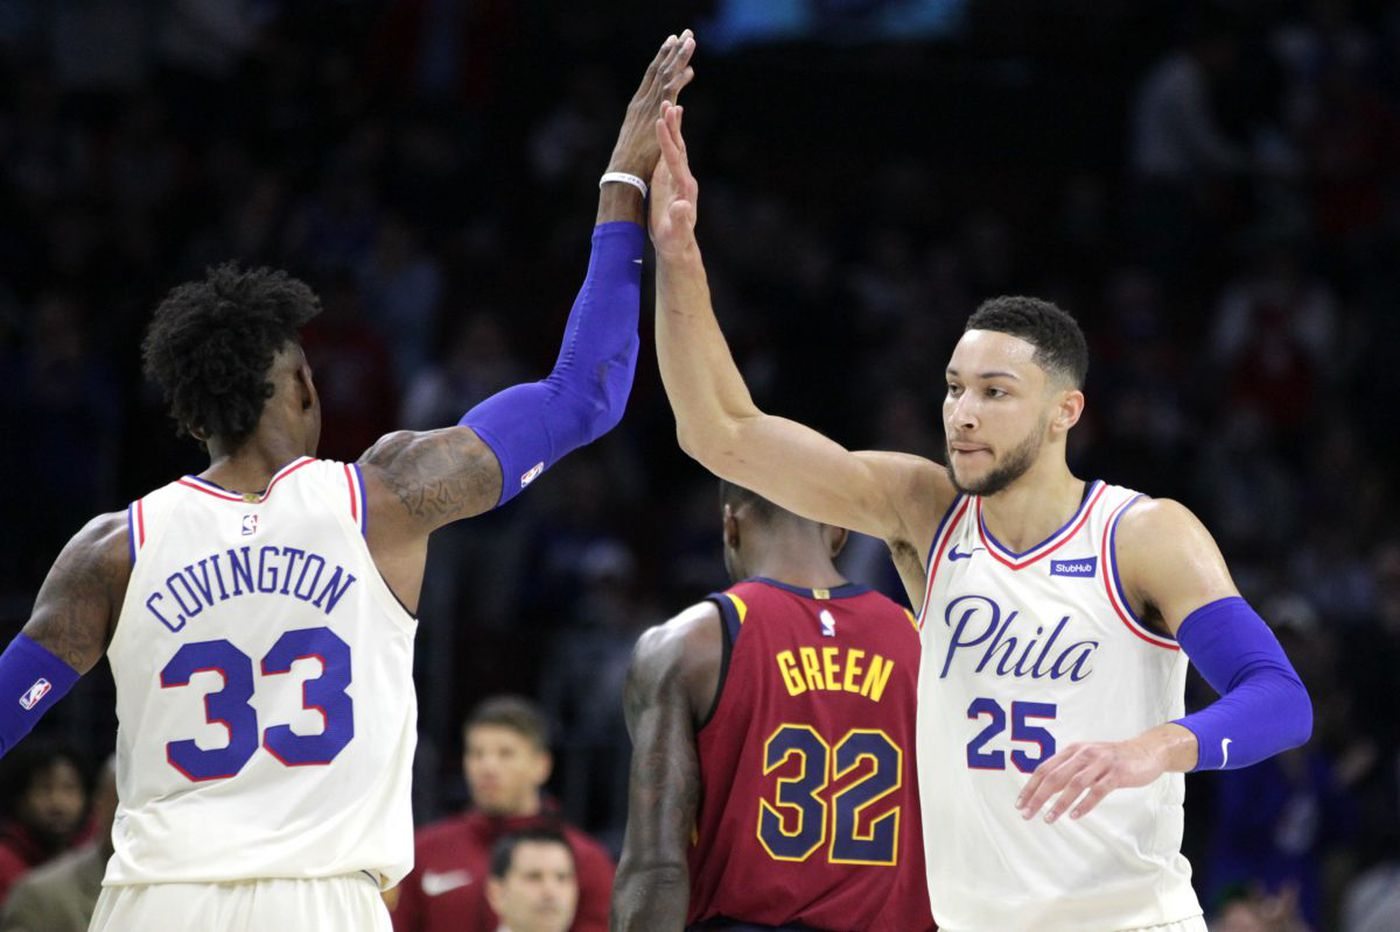 Sixers-Cavs observations, 'best' and 'worst' awards: Ben Simmons' all-star-like skills, T.J. McConnell's lack of playing time and Wells Fargo Center's electricity